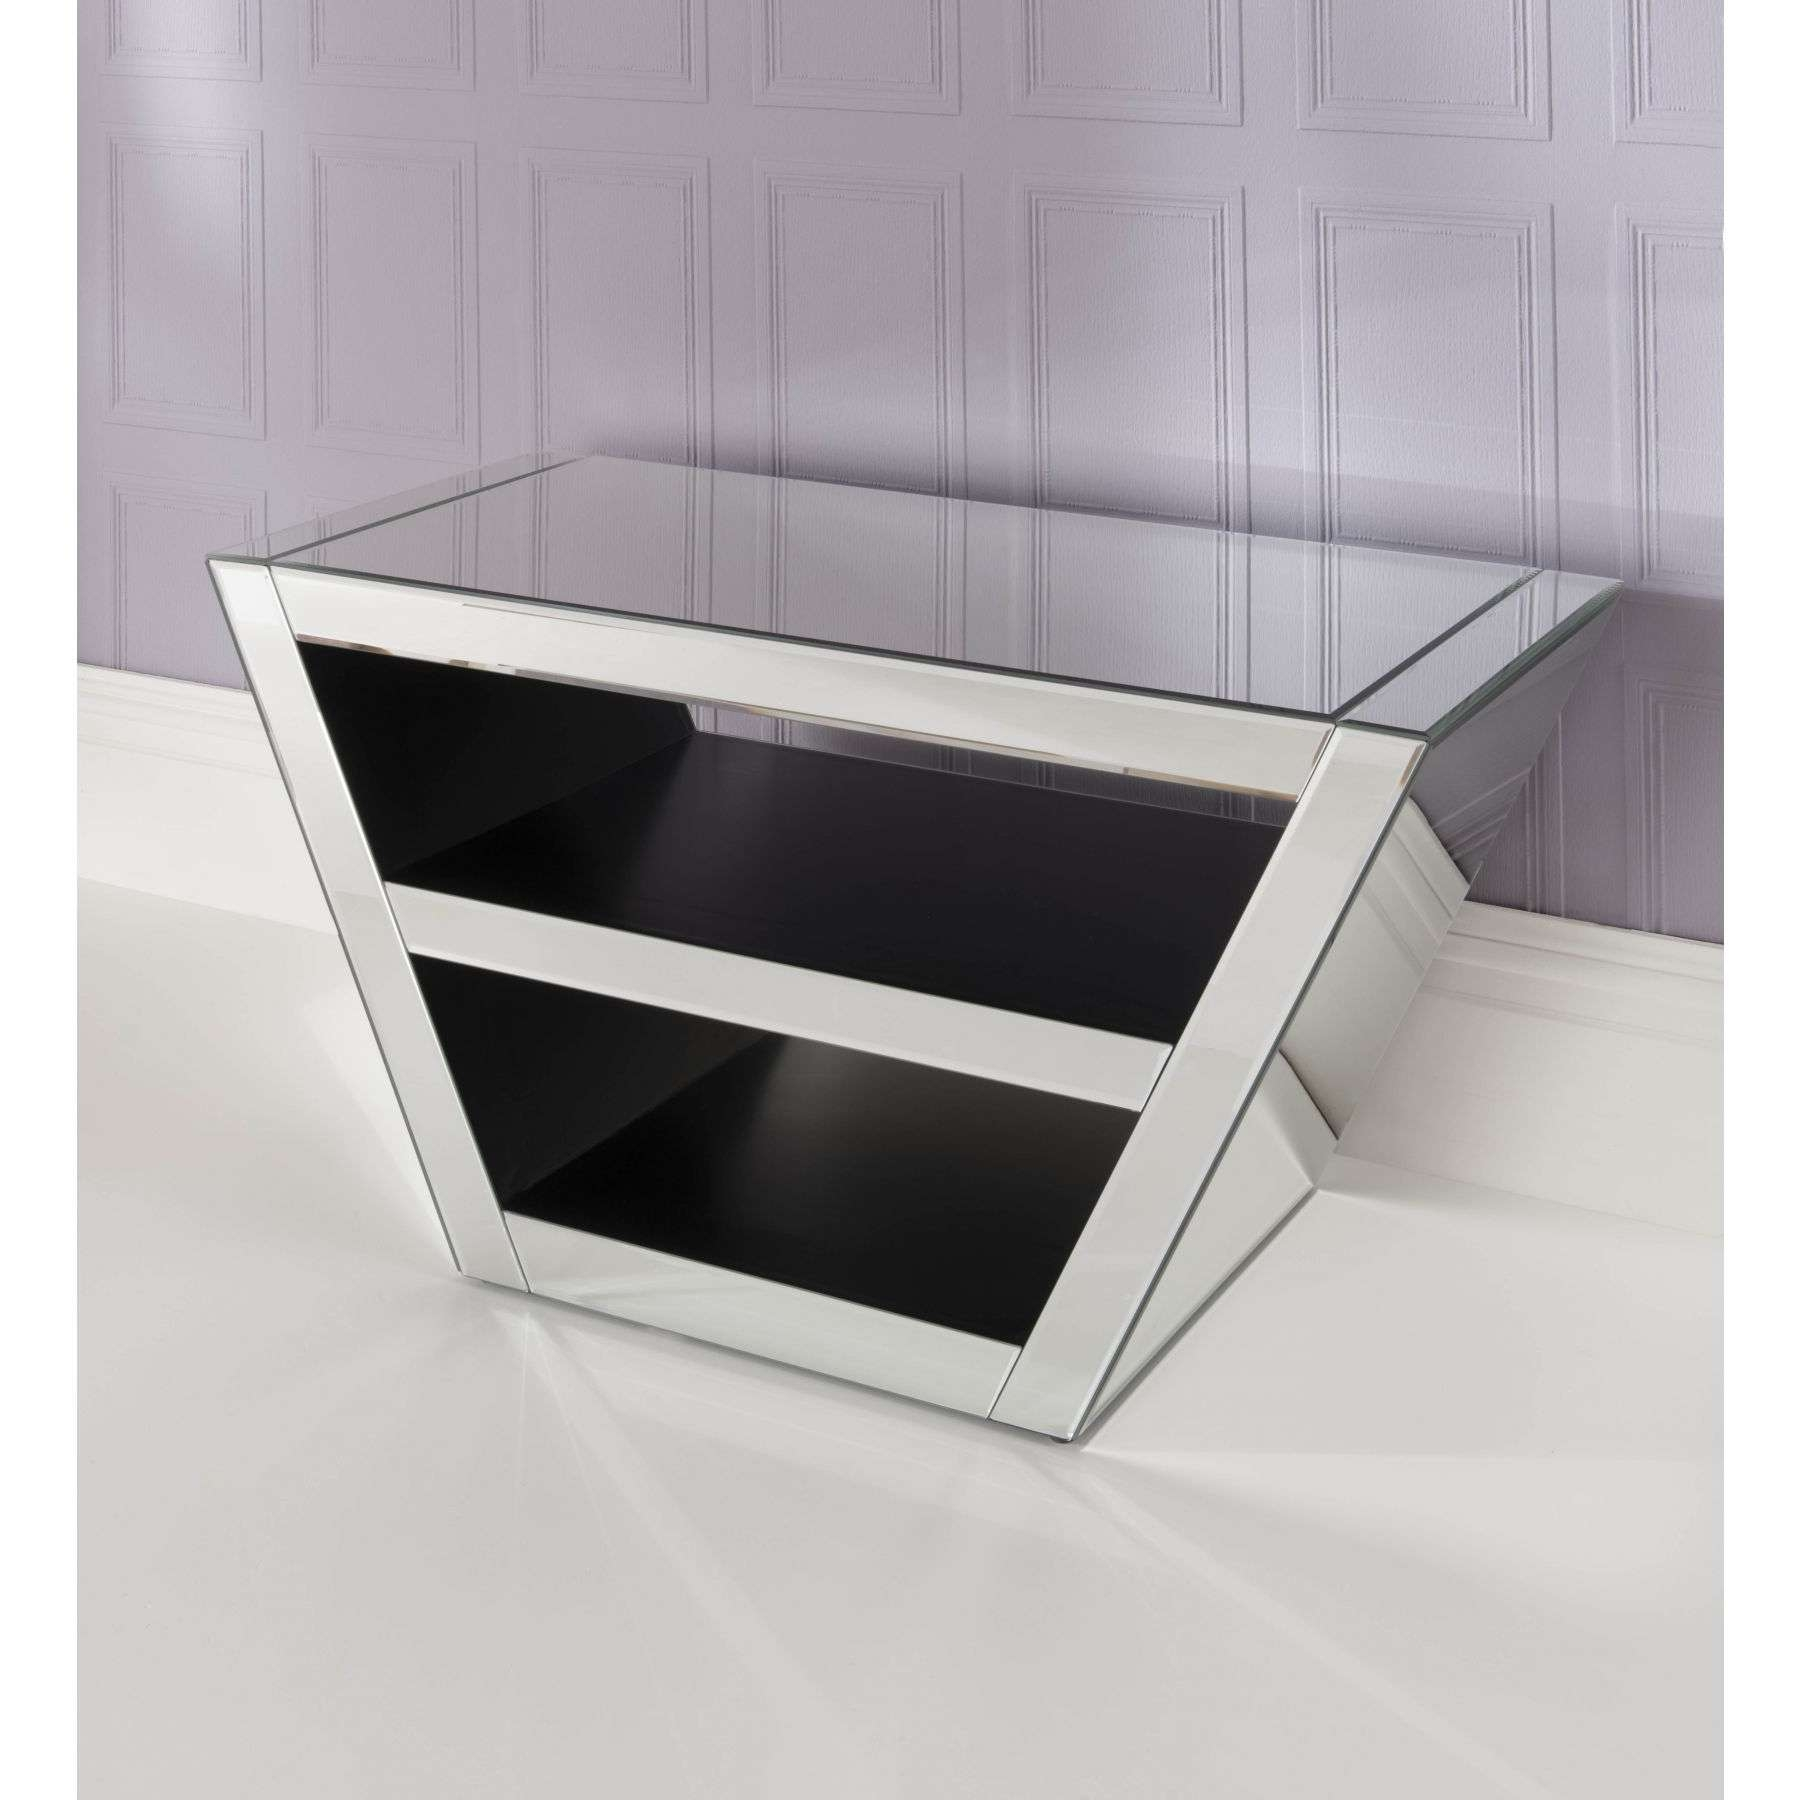 Mirrored Tv Cabinet | Venetian Glass Tv Stand | Homesdirect365 Inside Mirrored Tv Stands (View 4 of 15)